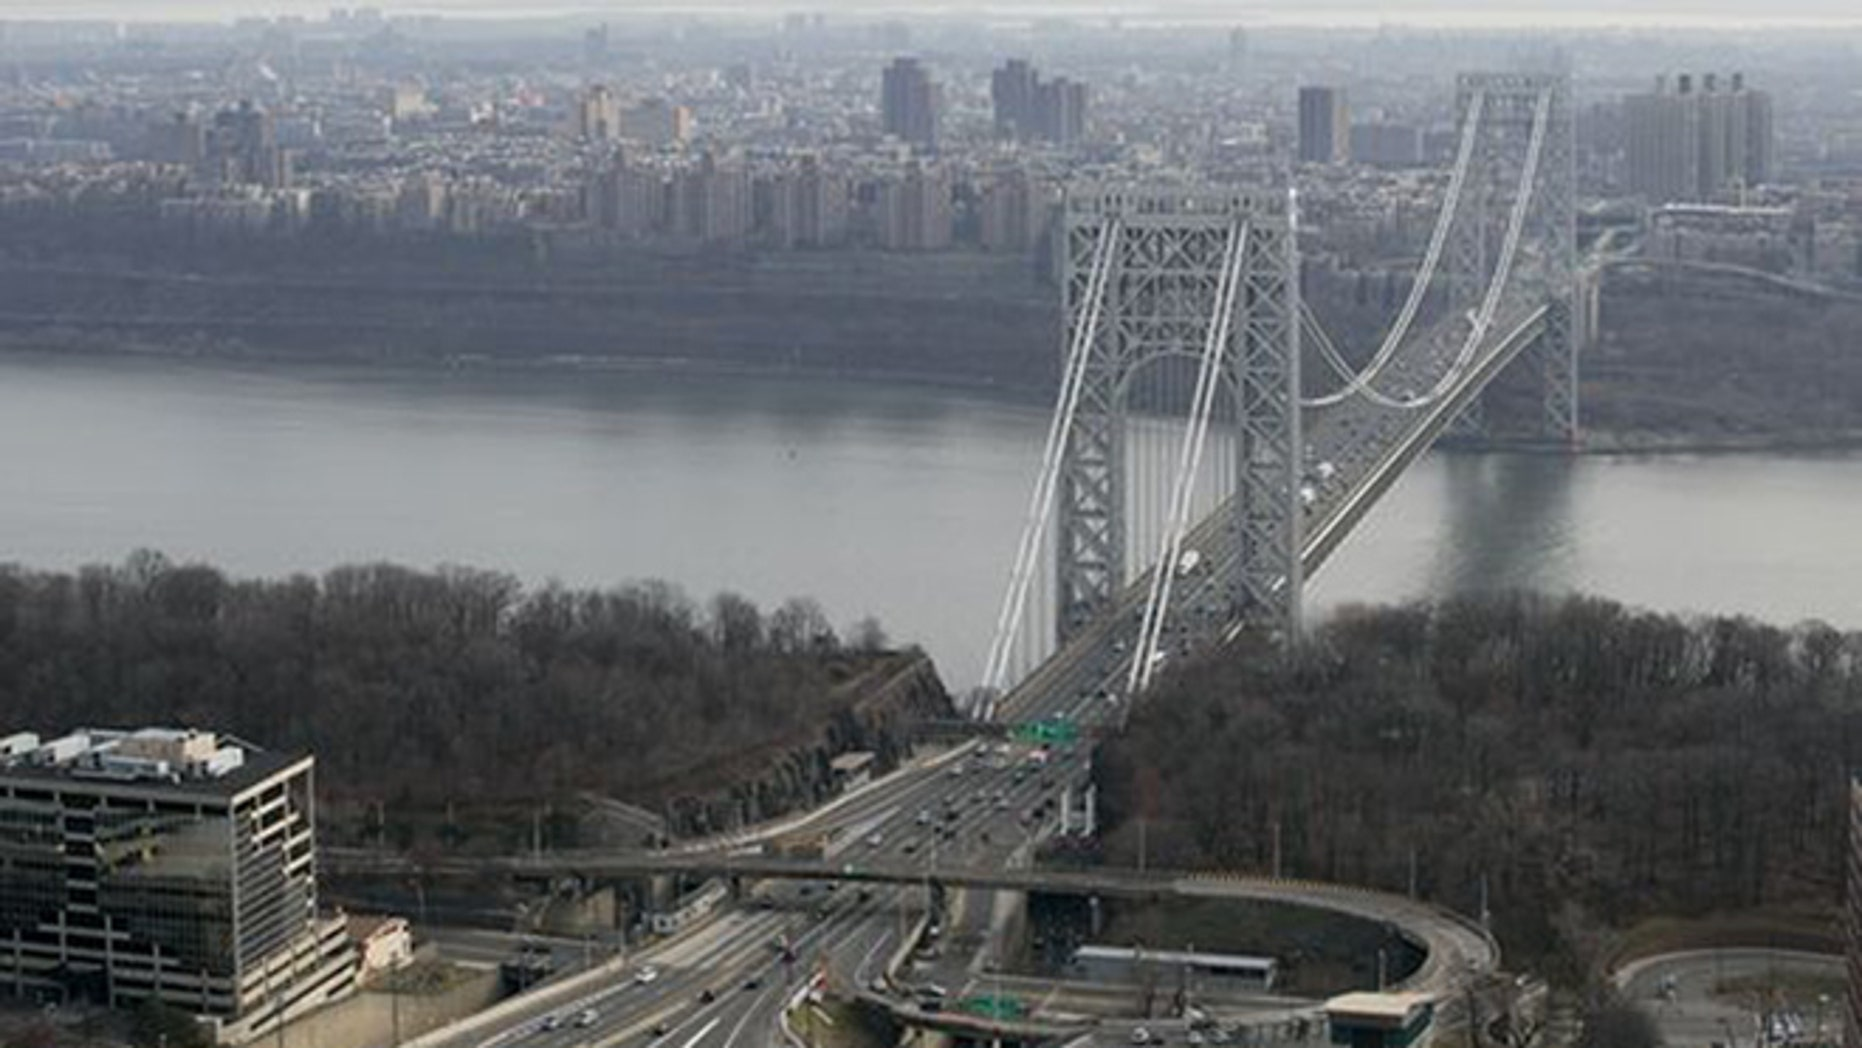 The George Washington Bridge, carrying I-95, US-1 and US-9 across the Hudson River between New Jersey and New York, is shown in this AP photo.  (Associated Press)